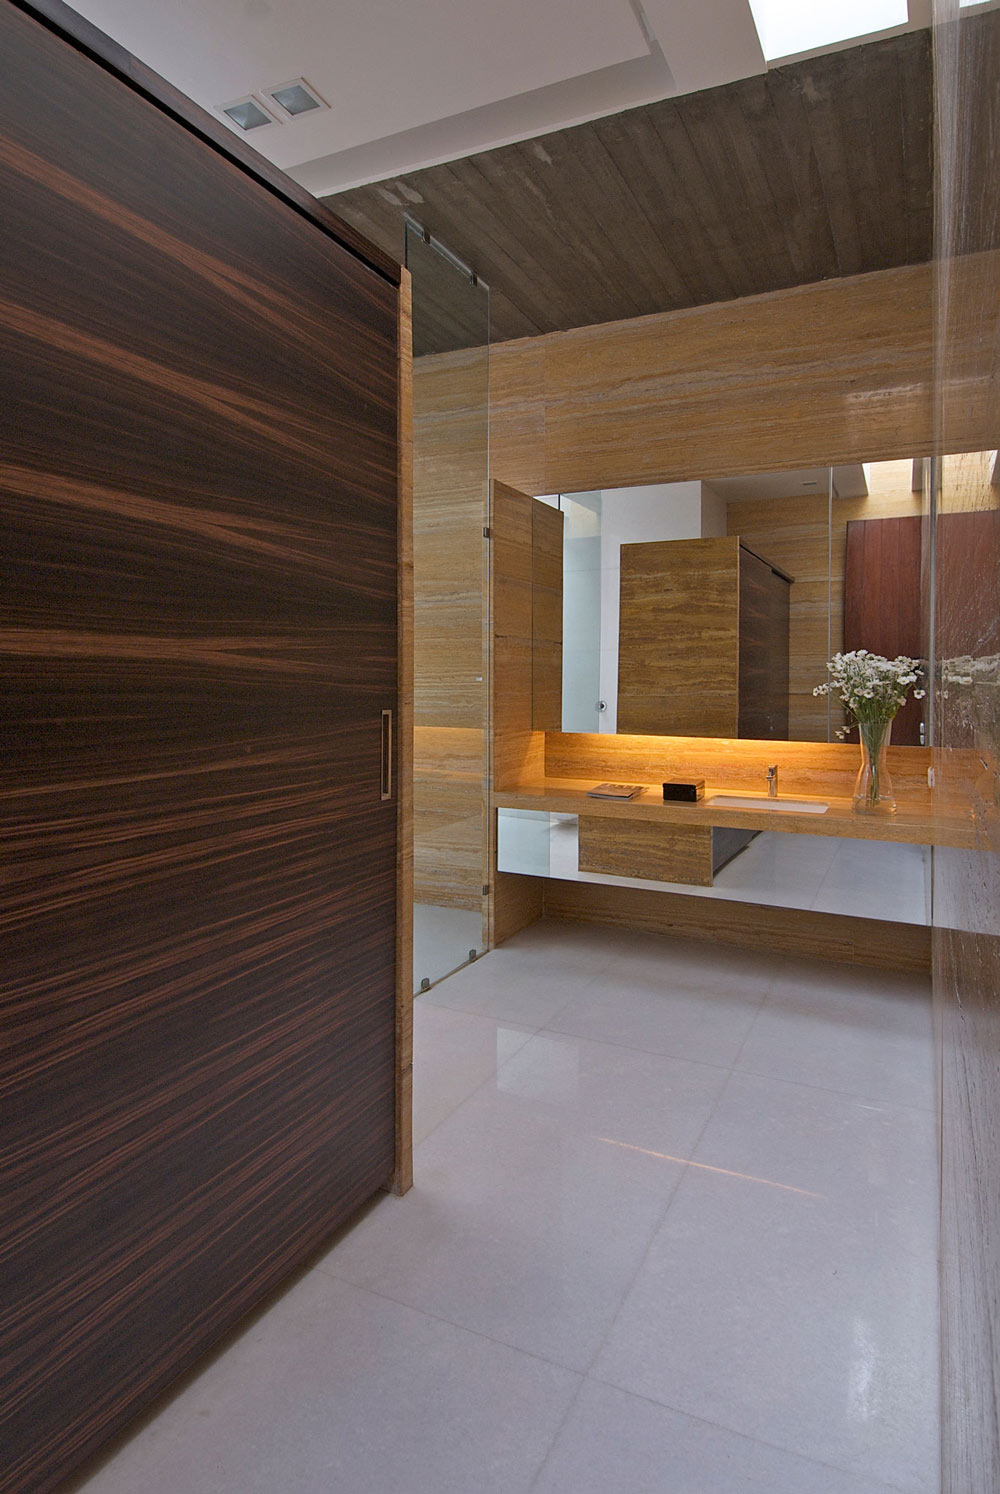 Bathroom, Poona House in Mumbai, India by Rajiv Saini